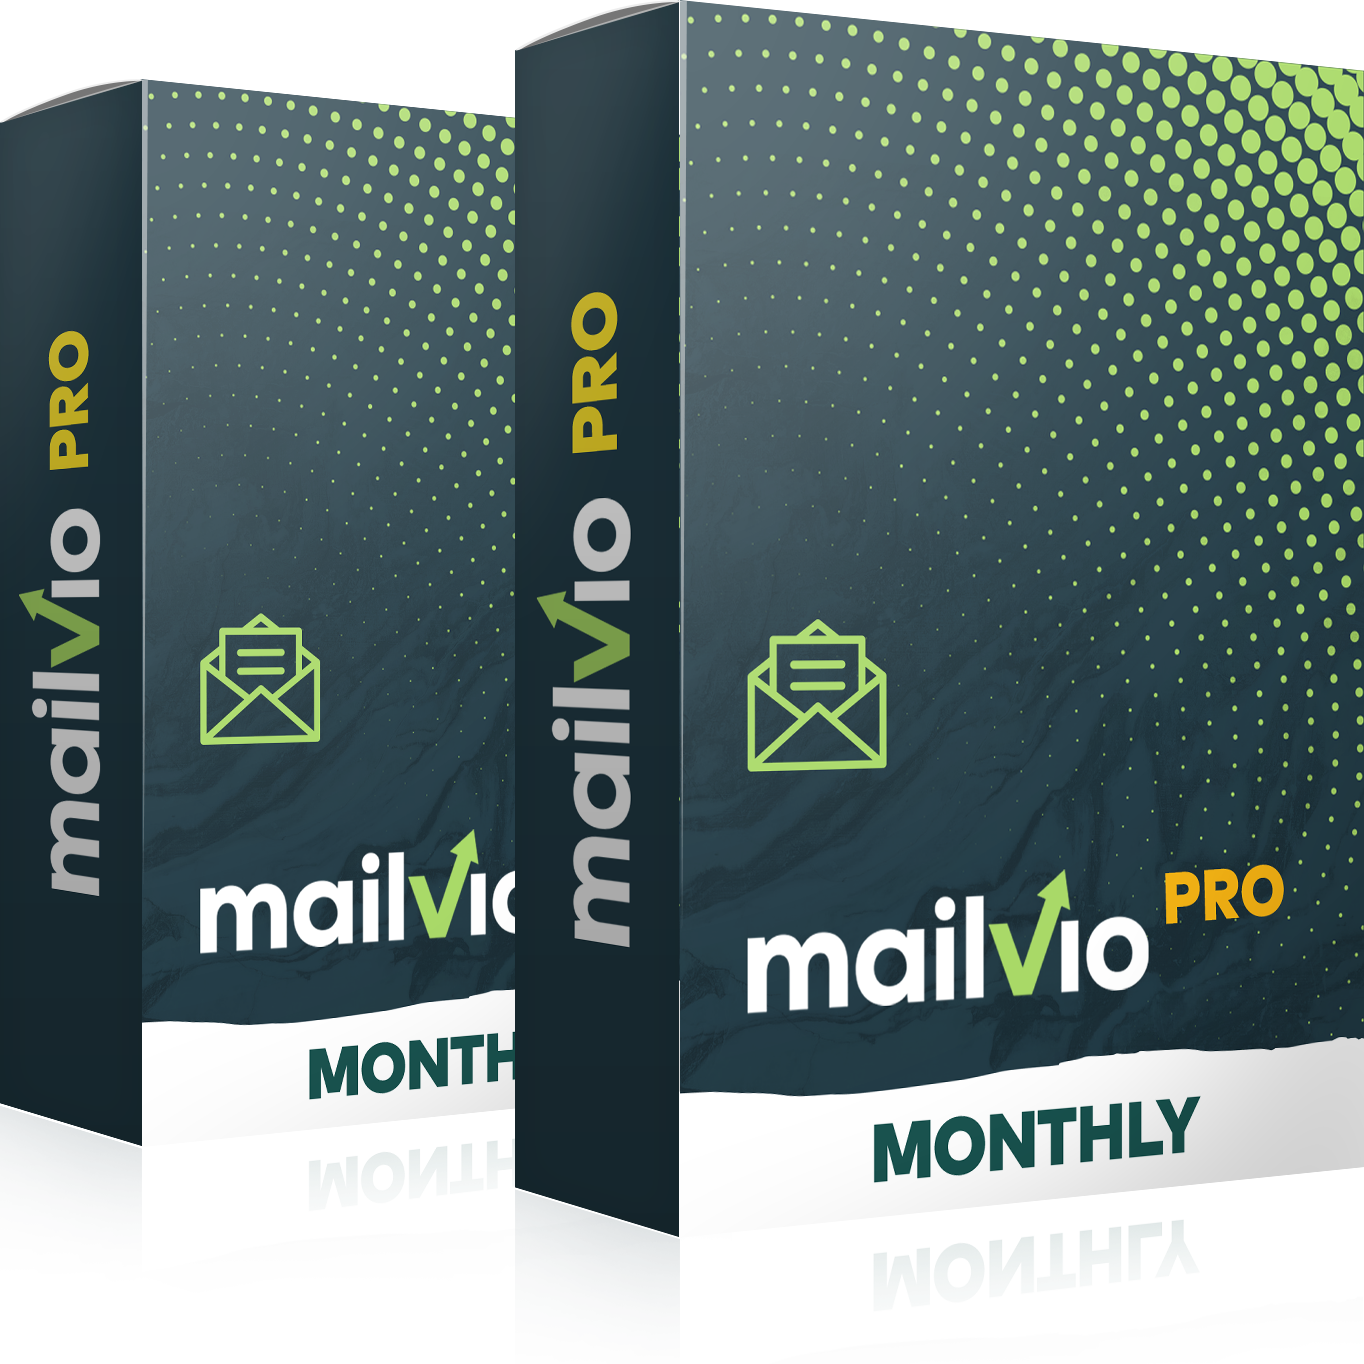 mailvio review image